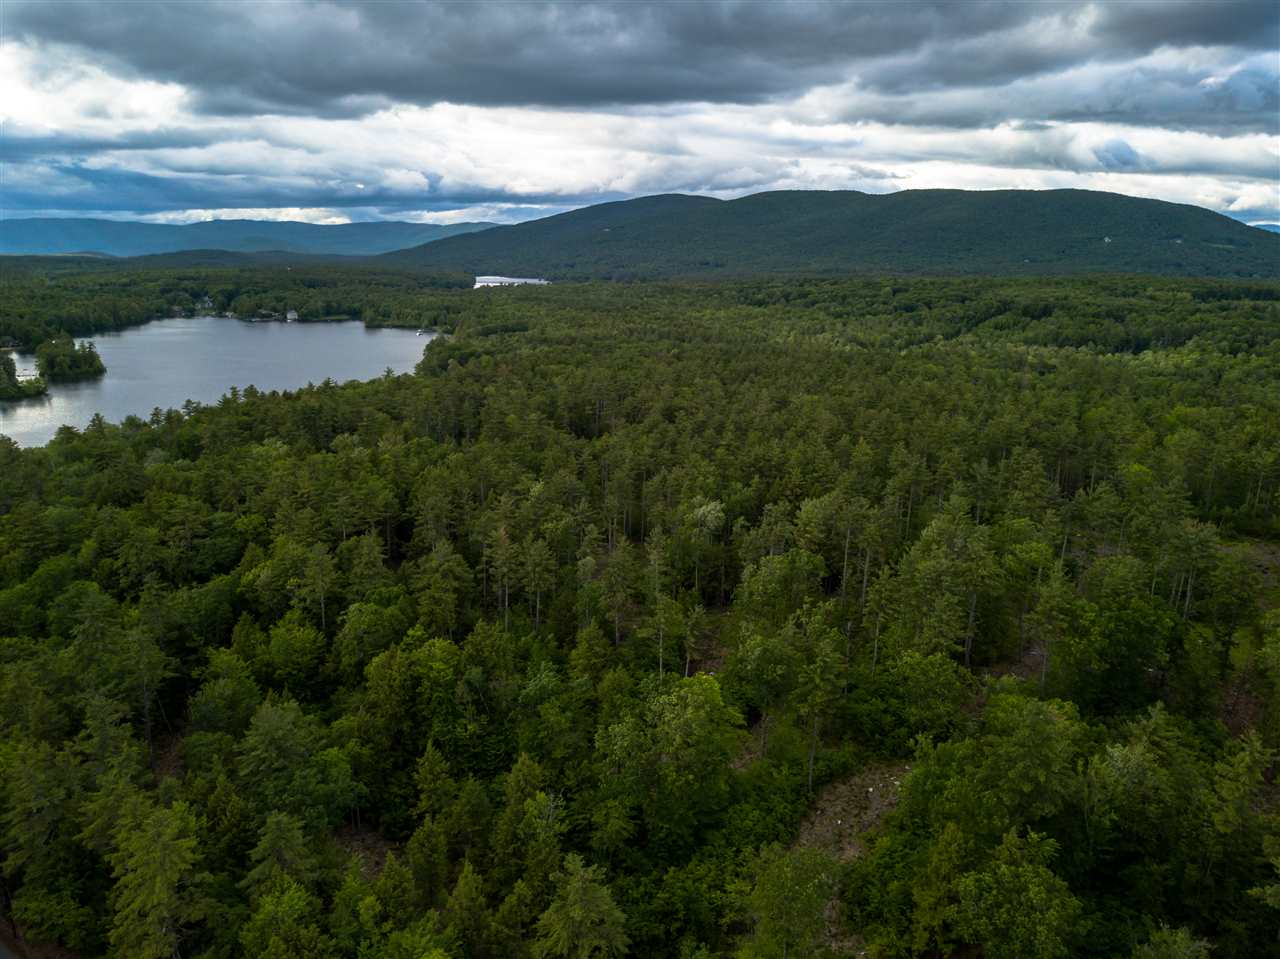 MLS 4805446: Eagle Shore Road, Moultonborough NH